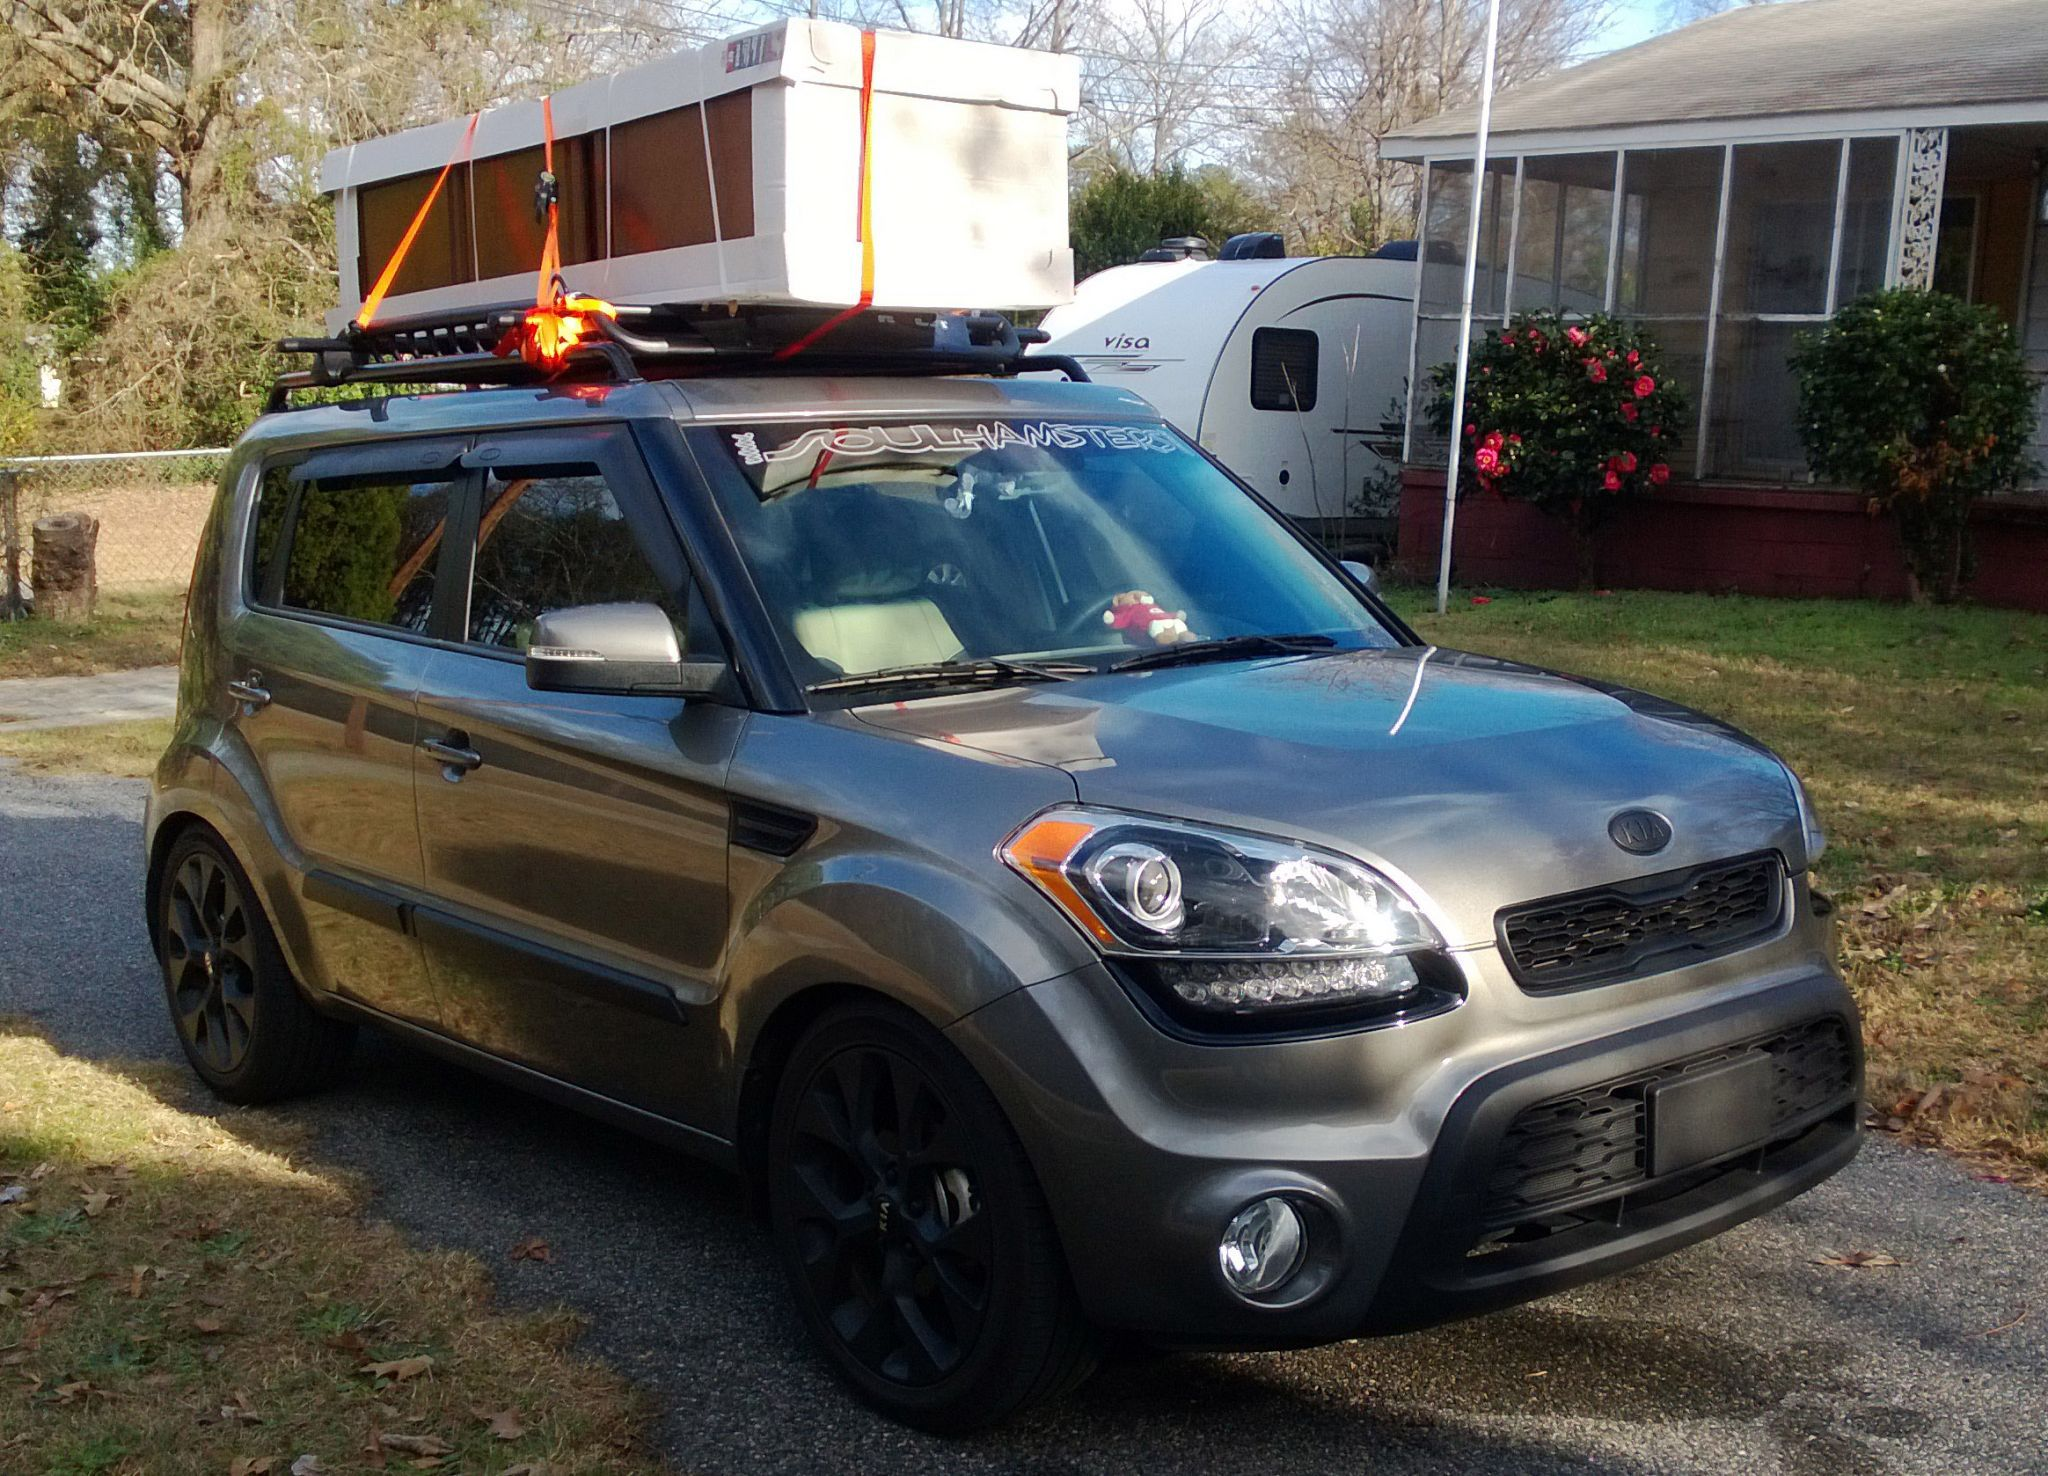 kia soul roof rack weight limit | Ideas / Rides ...